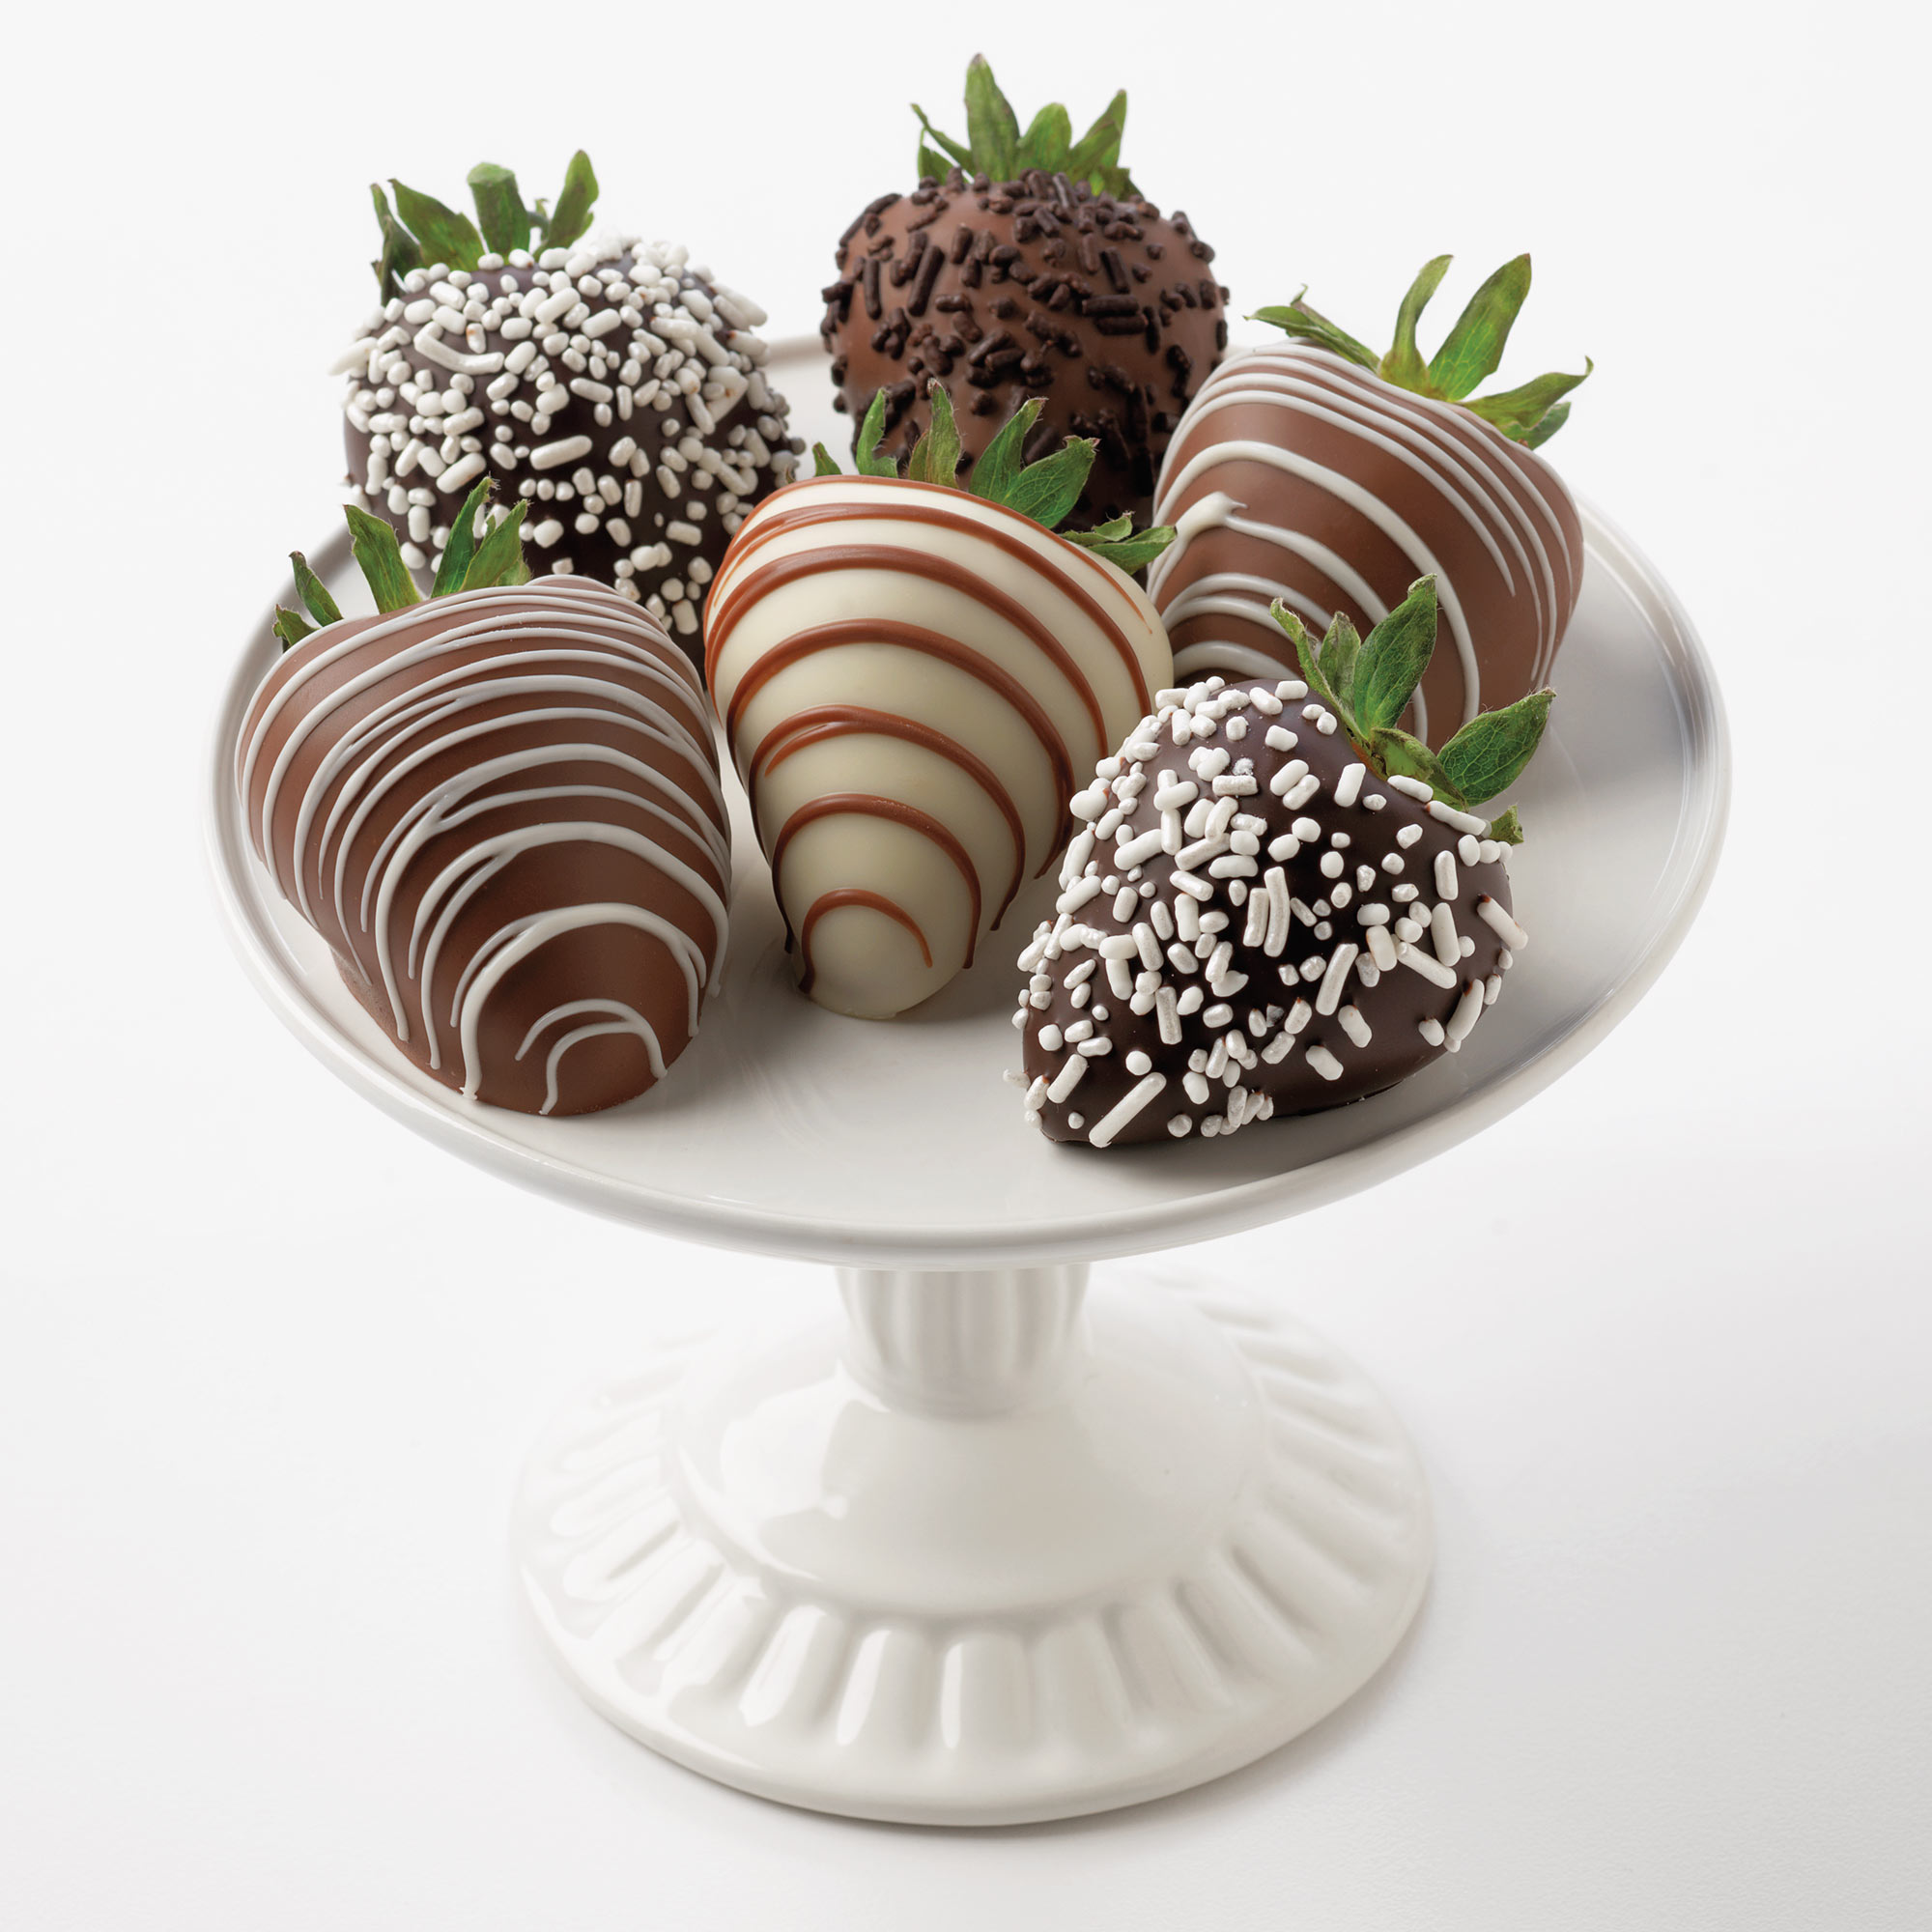 White Chocolate Covered Strawberries For Sale